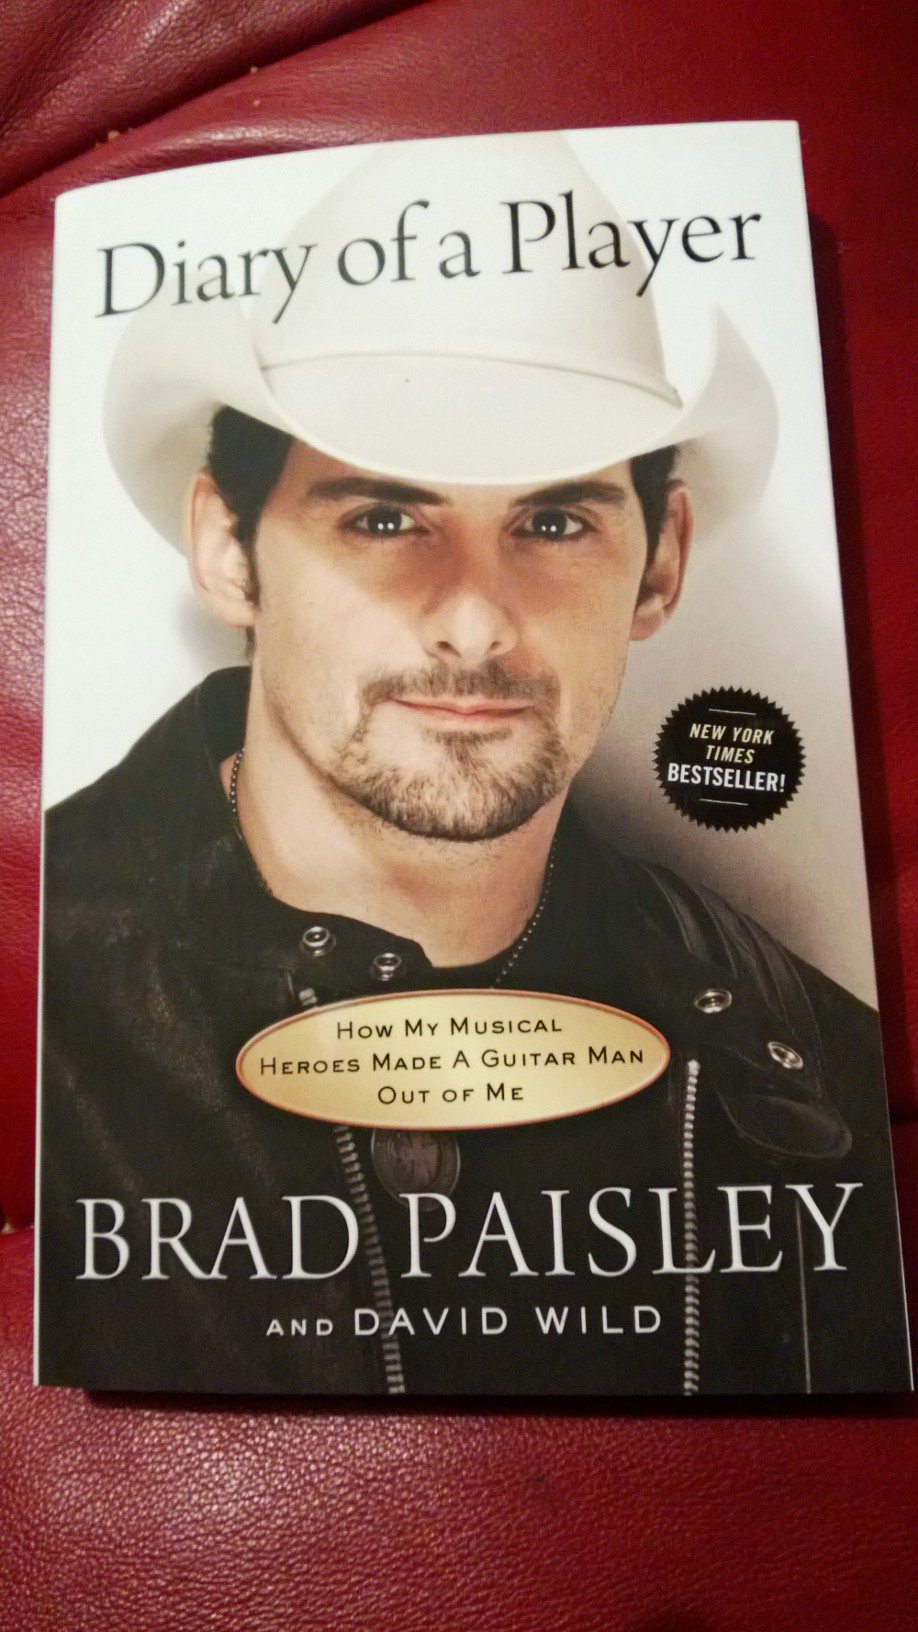 Brad Paisley - Diary of a Player